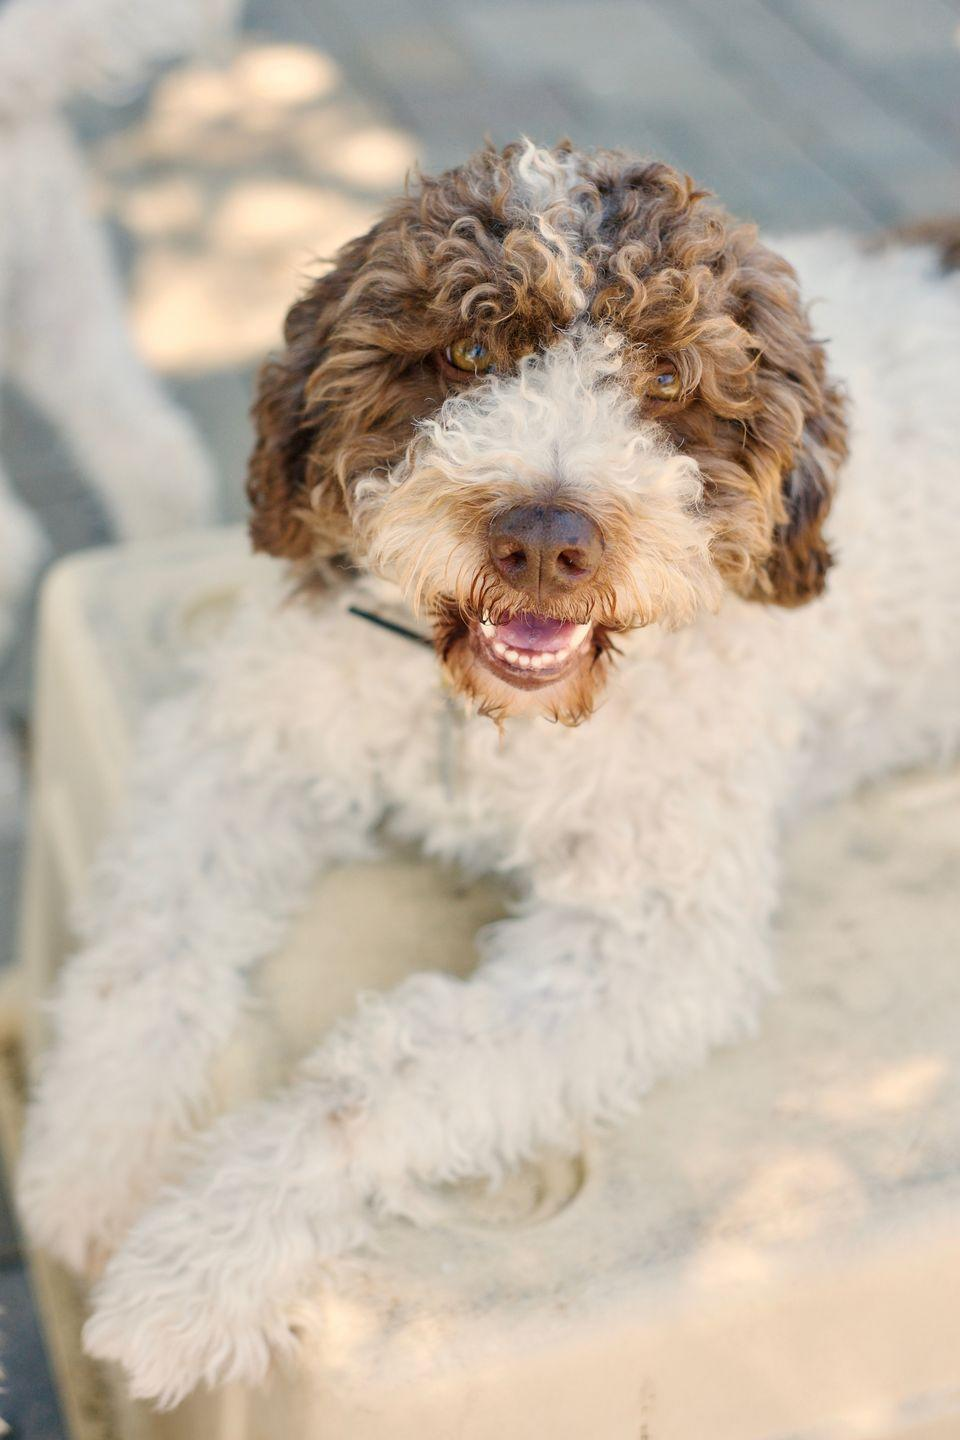 """<p>Don't let the fancy name fool you. These wooly, small- to <a href=""""https://www.goodhousekeeping.com/life/pets/advice/g1825/medium-sized-dogs/"""" rel=""""nofollow noopener"""" target=""""_blank"""" data-ylk=""""slk:medium-sized pups"""" class=""""link rapid-noclick-resp"""">medium-sized pups</a> aren't pretentious in the least. They check off everything on dog lovers' wish lists: Hypoallergenic, active but not too hyper, easygoing and affectionate. They even have a hidden talent: Lagotti are especially excellent at truffle-hunting. While they may spend more time hunting down toys in your backyard, </p>"""